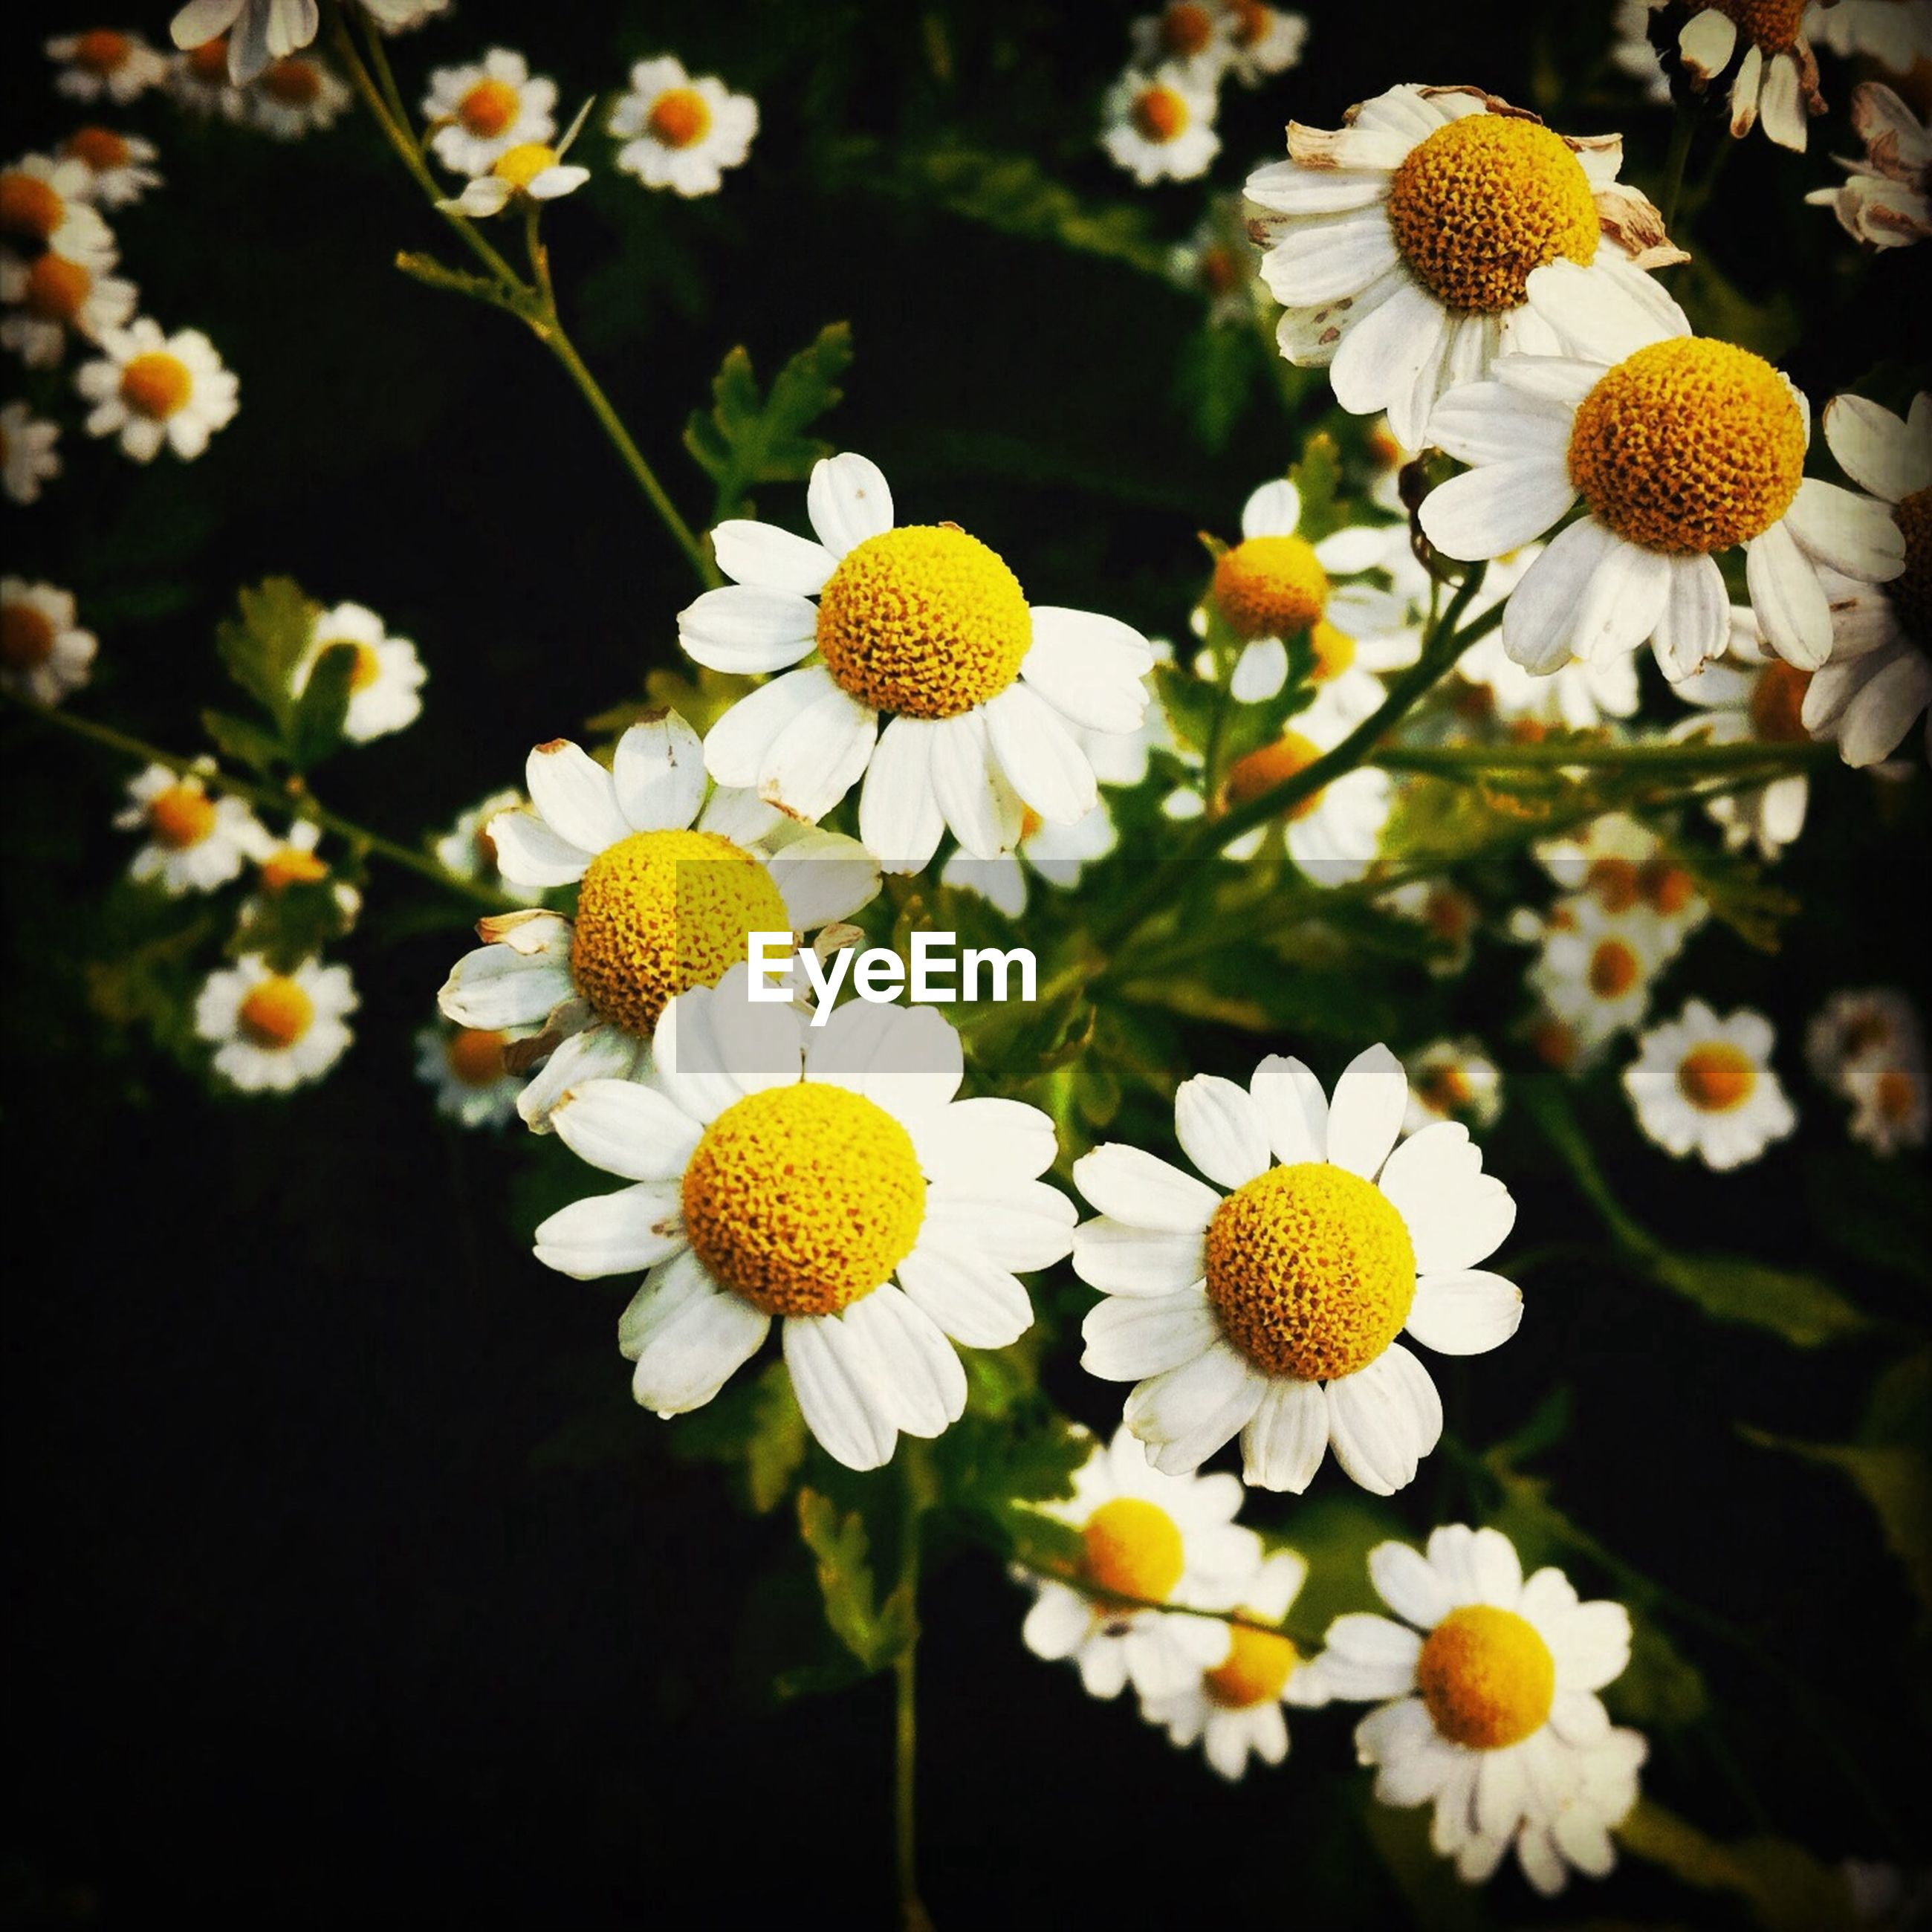 flower, freshness, petal, fragility, flower head, daisy, beauty in nature, growth, yellow, white color, nature, blooming, pollen, close-up, plant, in bloom, blossom, high angle view, focus on foreground, botany